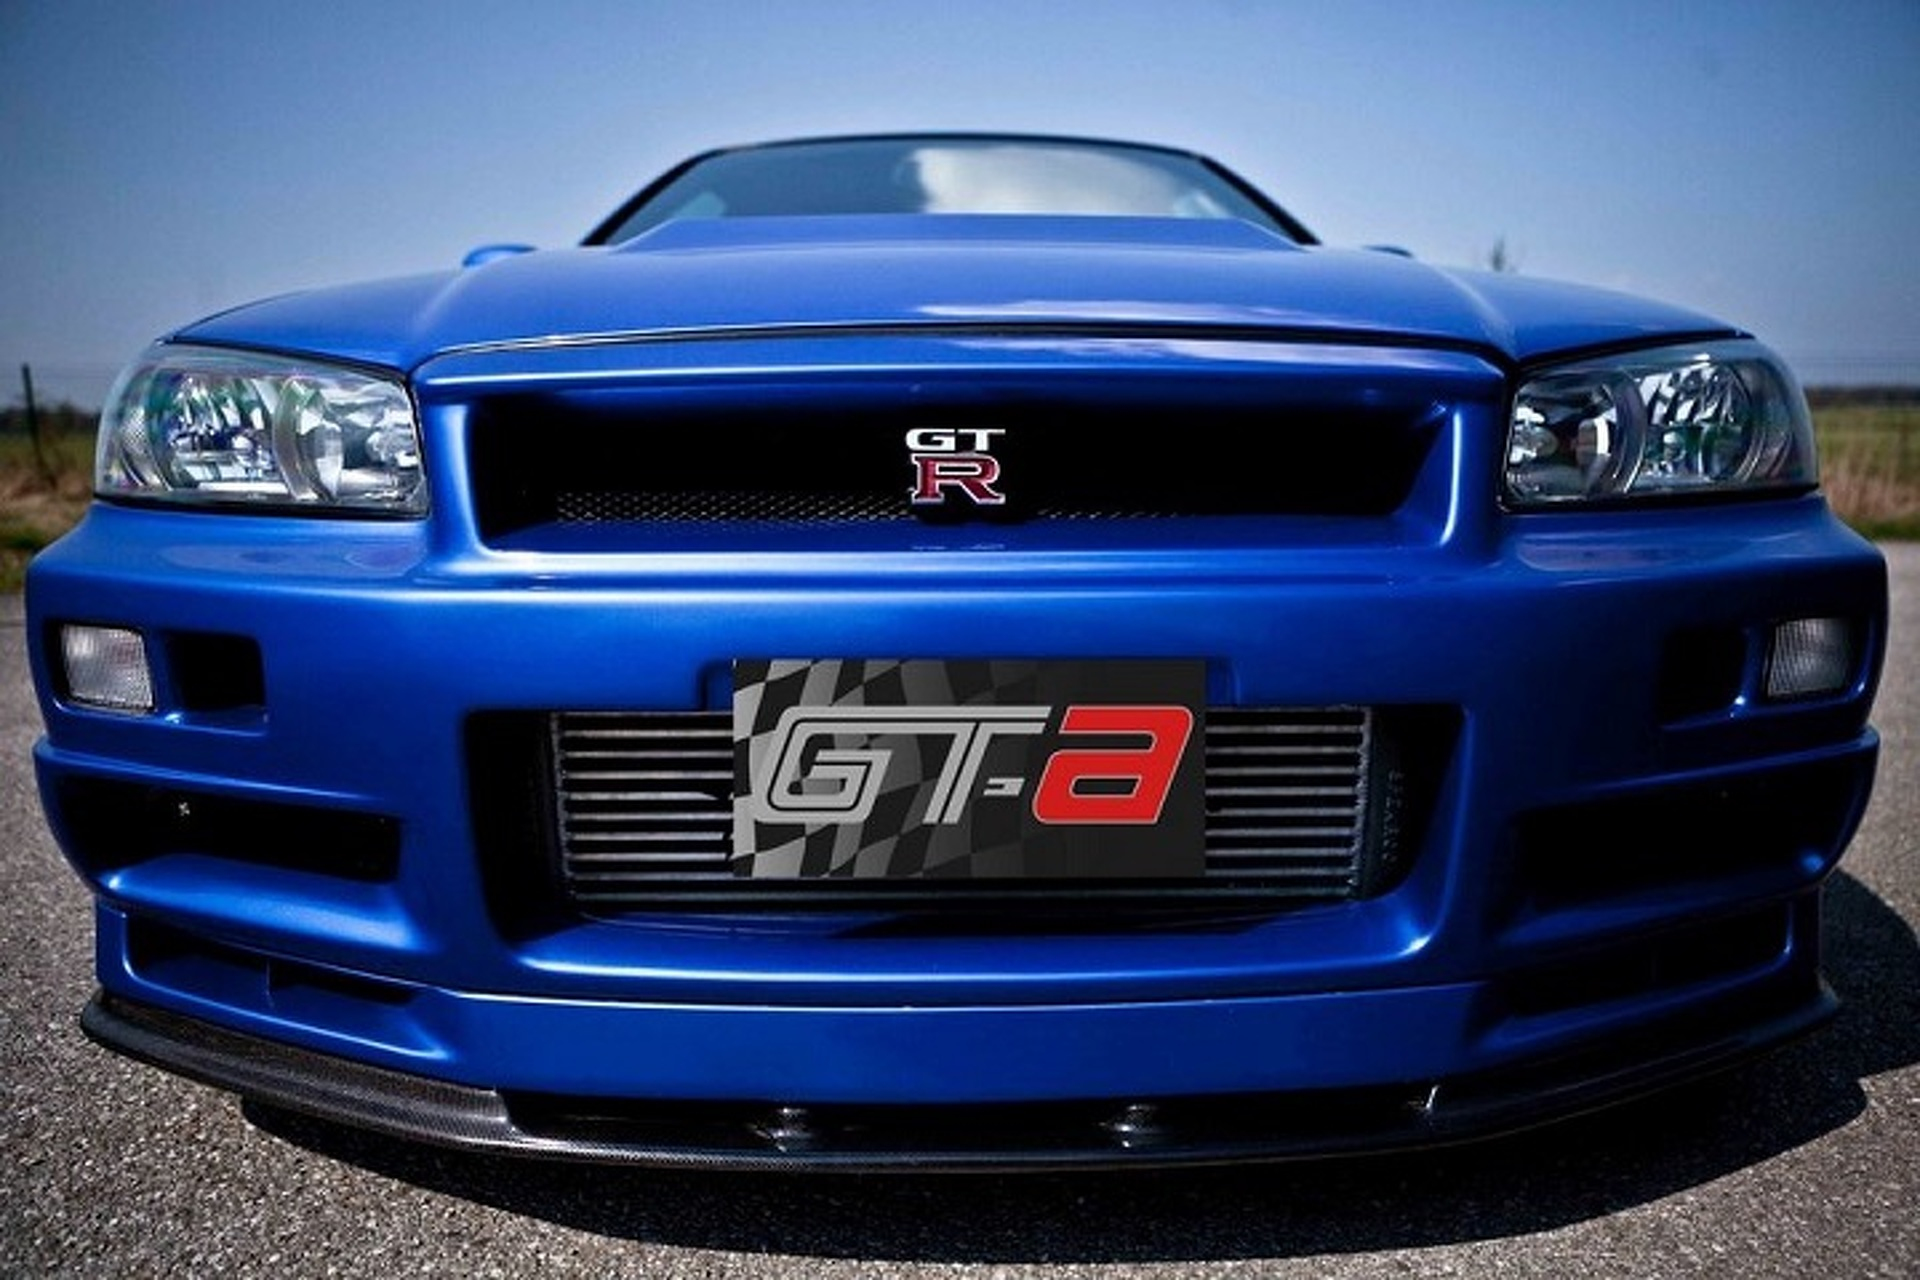 paul walker 39 s 39 fast and furious 4 39 nissan skyline gt r is for sale. Black Bedroom Furniture Sets. Home Design Ideas